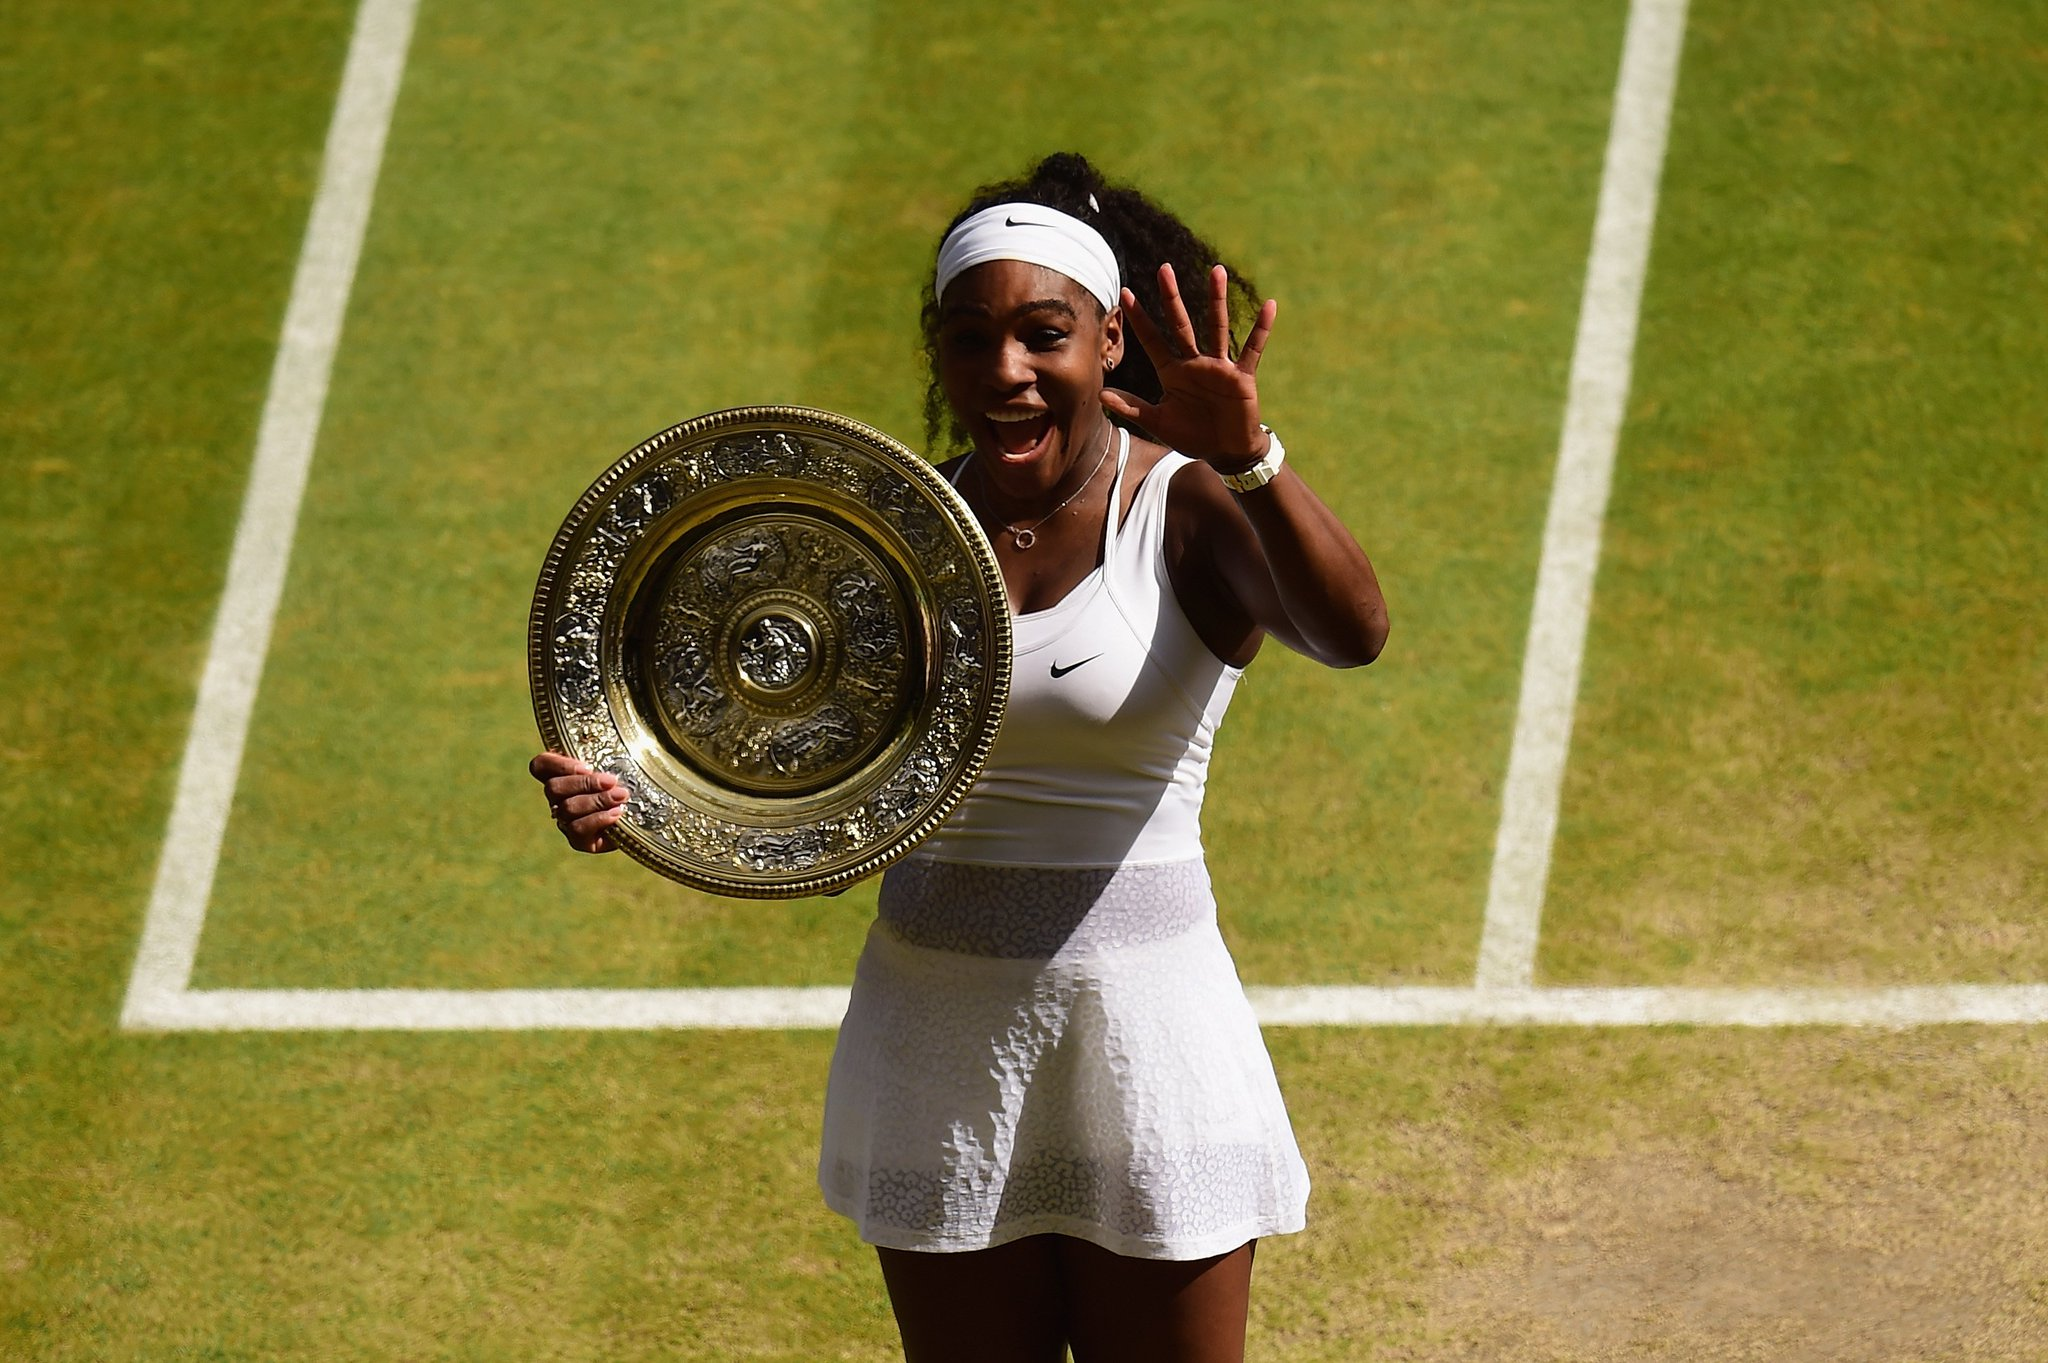 Happy birthday @serenawilliams ��  #OnThisDay in 1981, a legend was born.  23 Grand Slams later, she's still going! https://t.co/qA8yJosQ9F